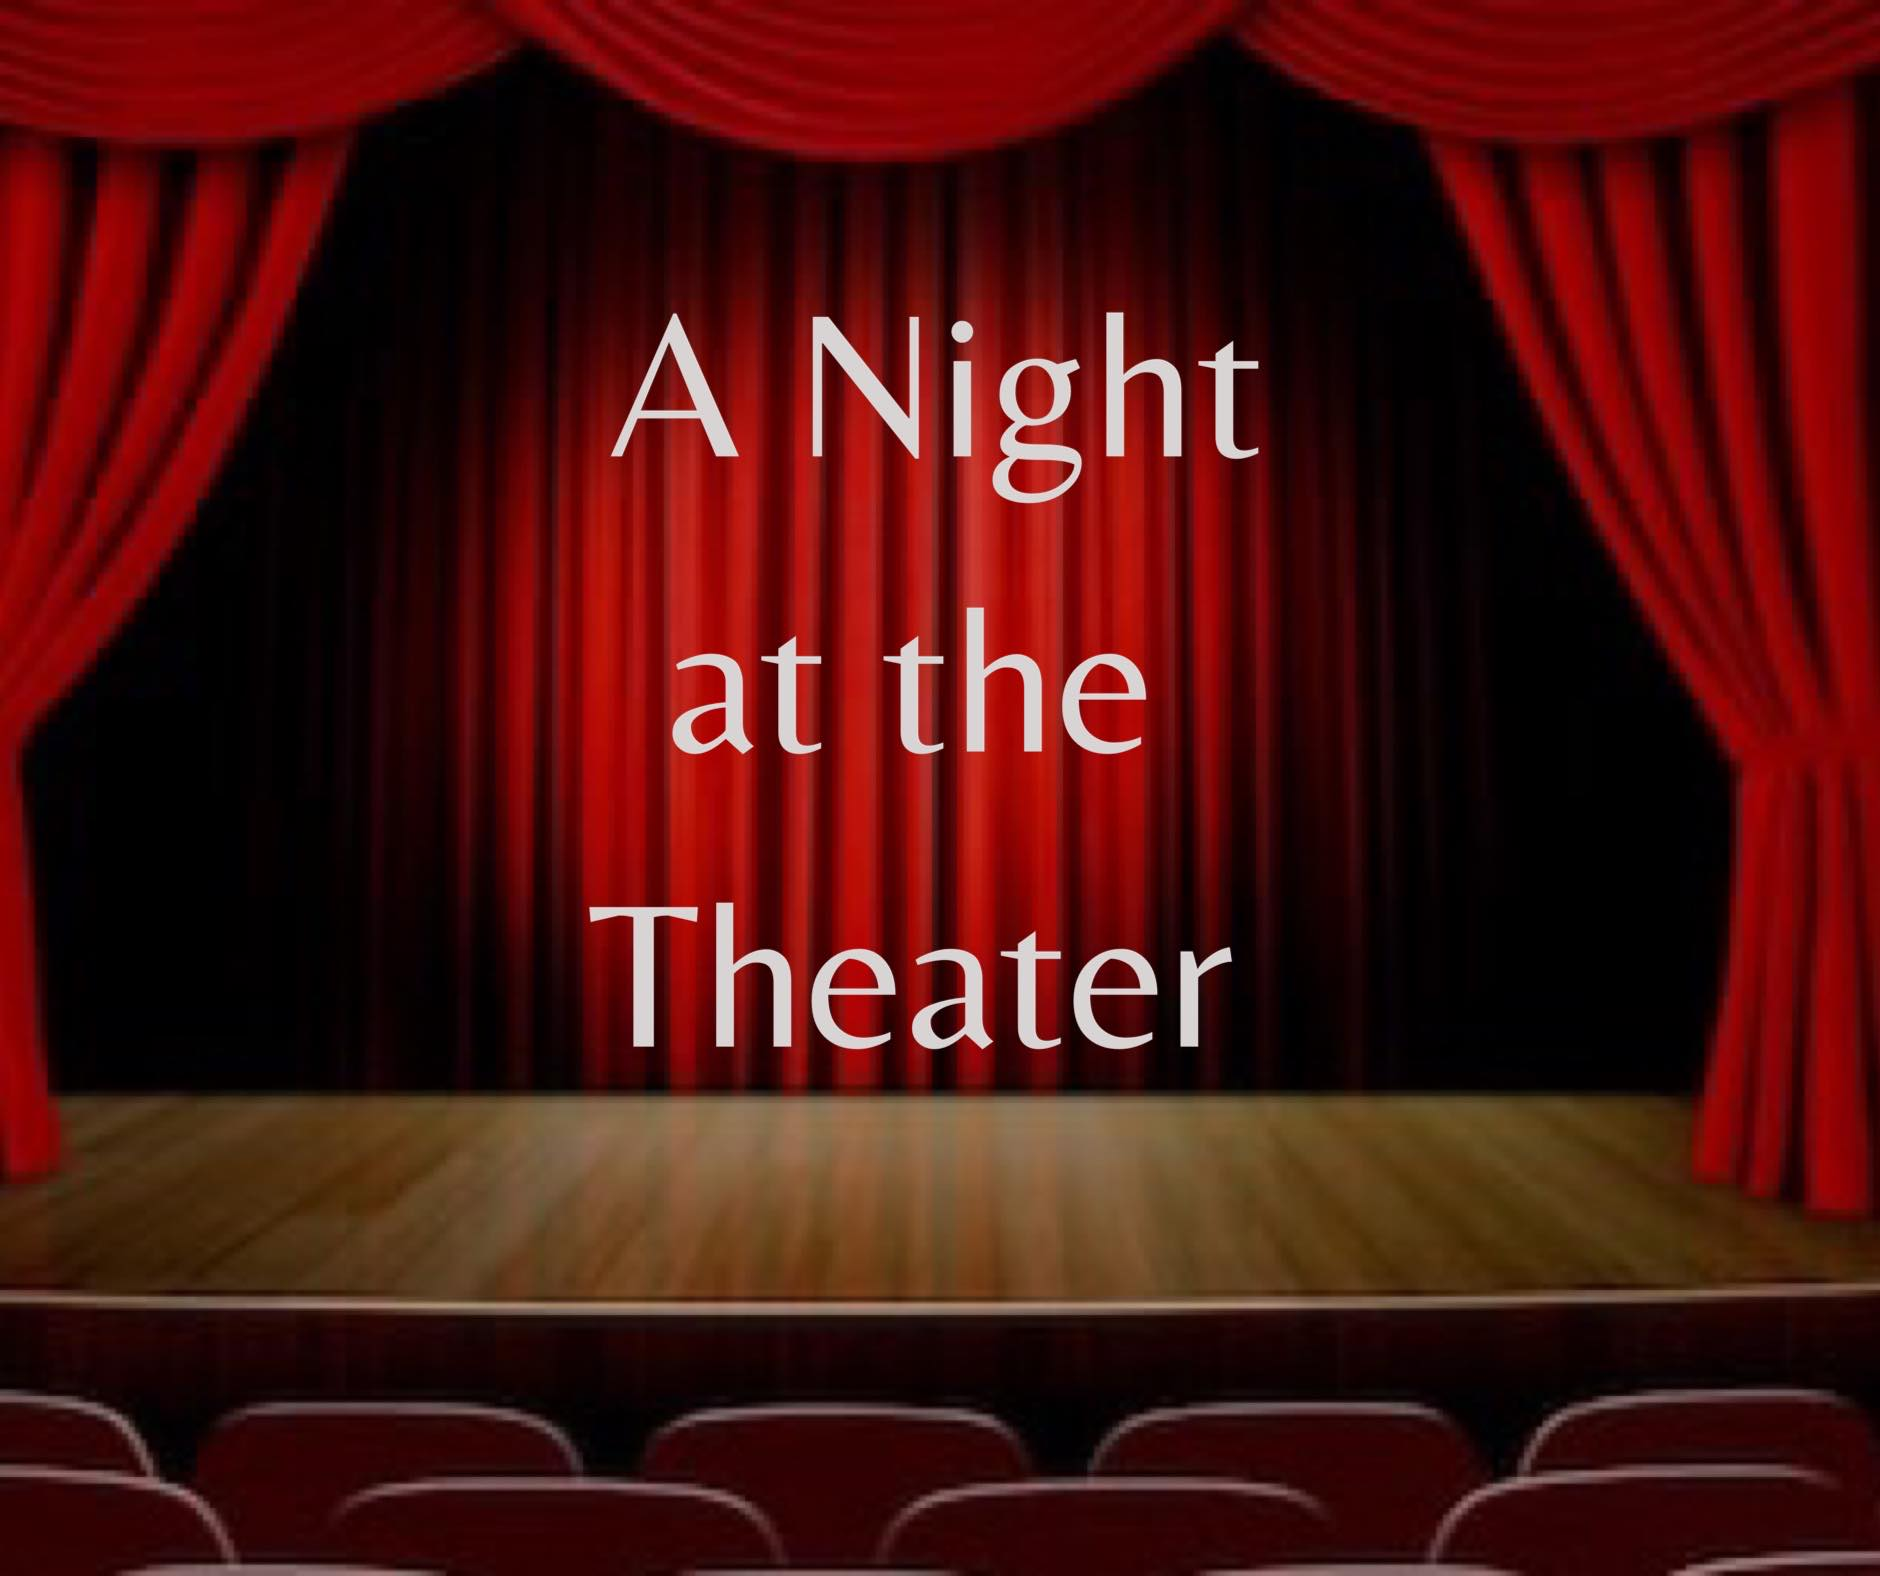 A Night at the Theater